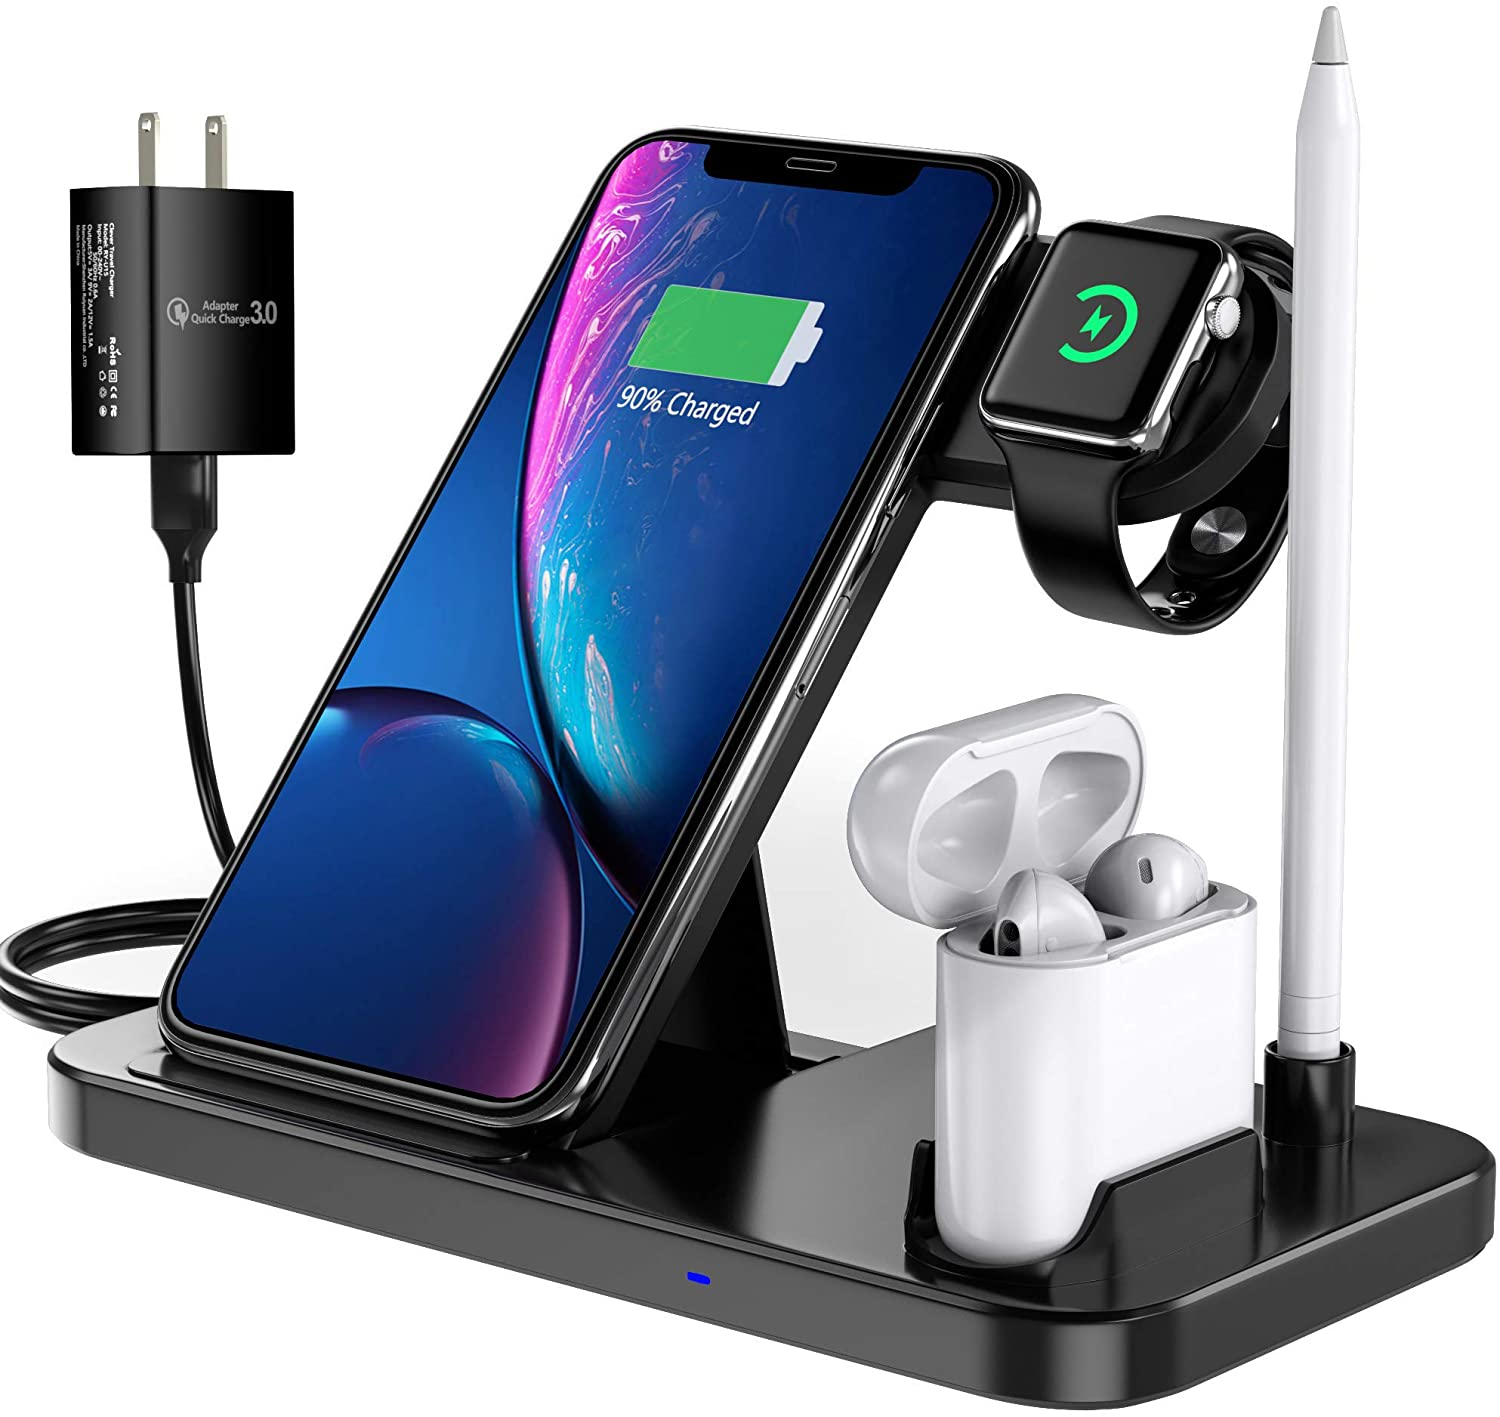 EVIGAL 4 in 1 Wireless Charger, Qi-Certified Fast Charging Station Compatible Apple Watch & AirPods & Apple Pencil, iPhone12/11/11Pro/11Pro Max/X/XS/XS Max/XR/8/8Plus, Samsung (with QC3.0 Adapter)